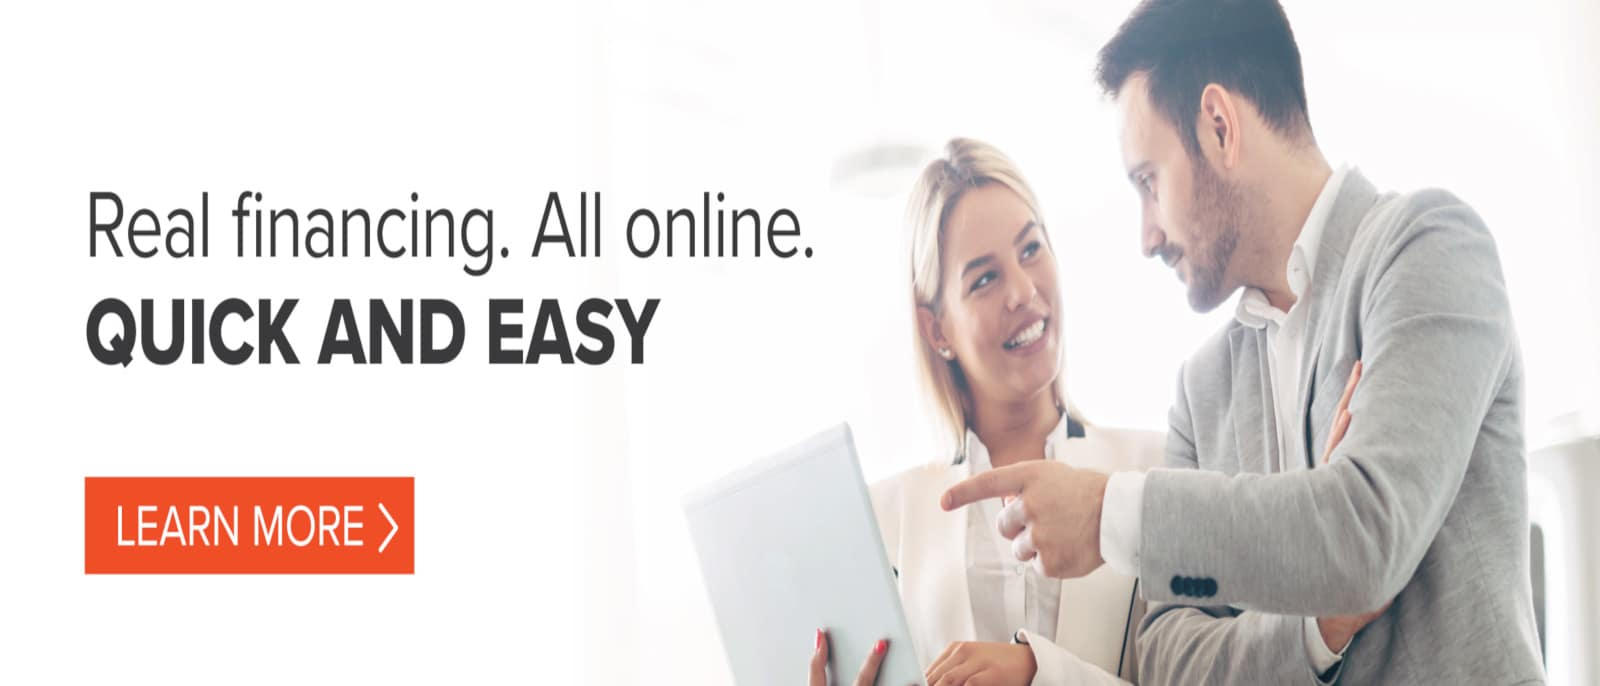 Real financing. all online. Learn more